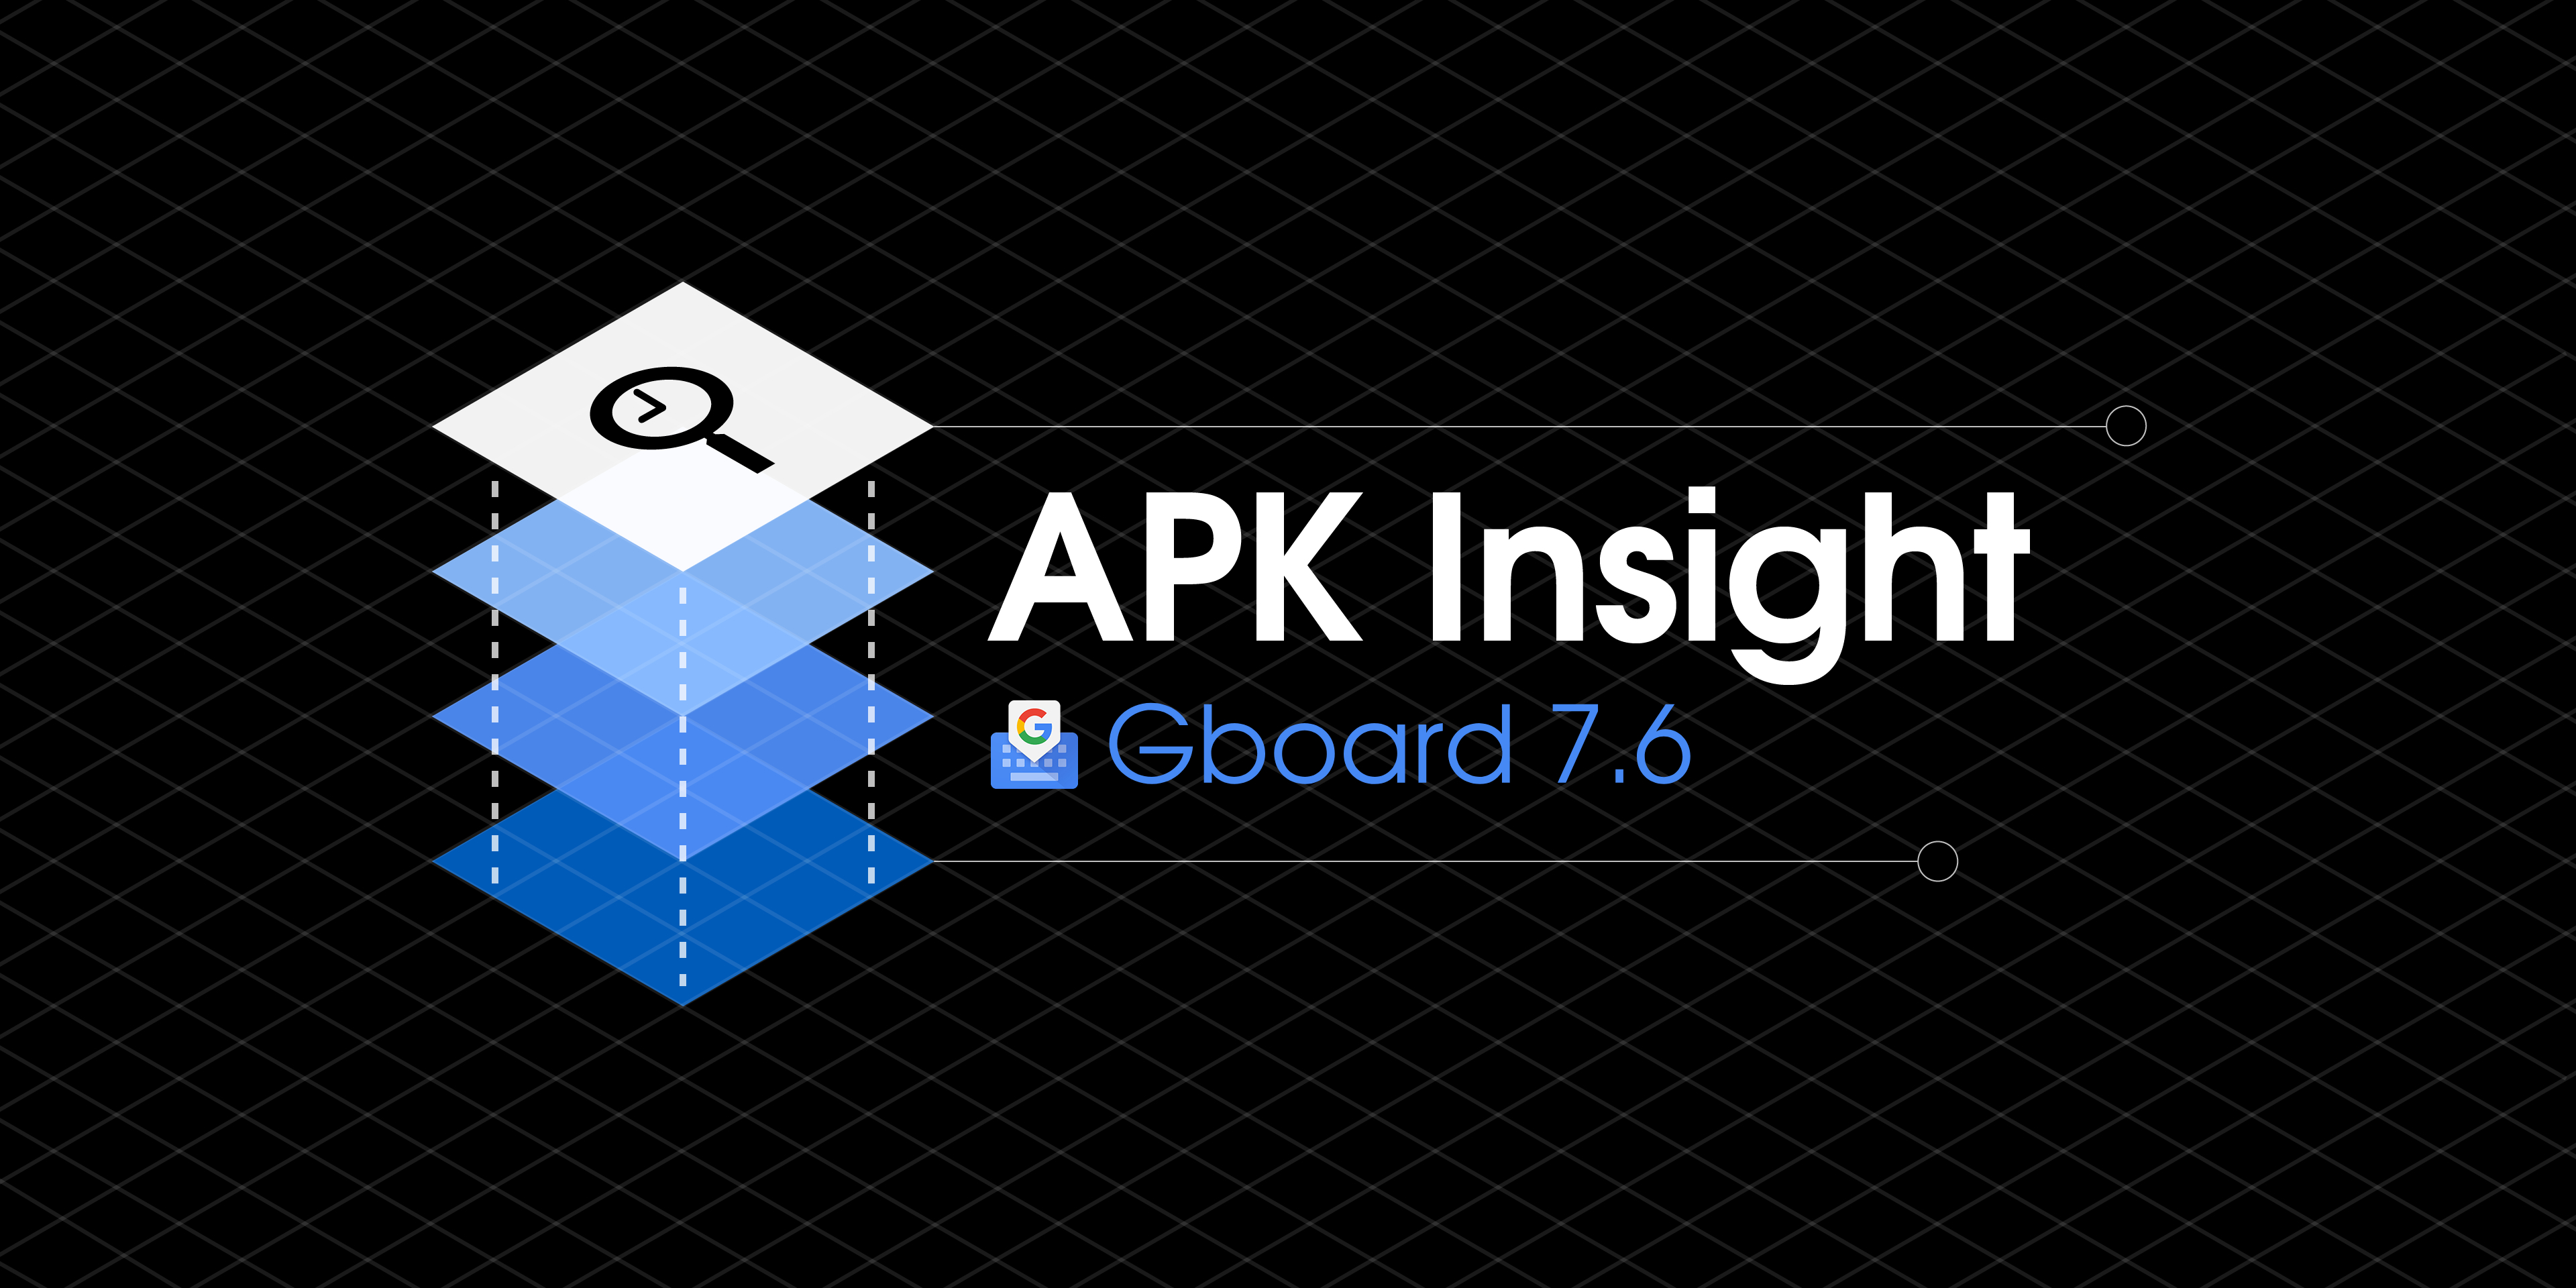 gboard 7 6 briefly enables floating keyboard preps smart reply more apk insight